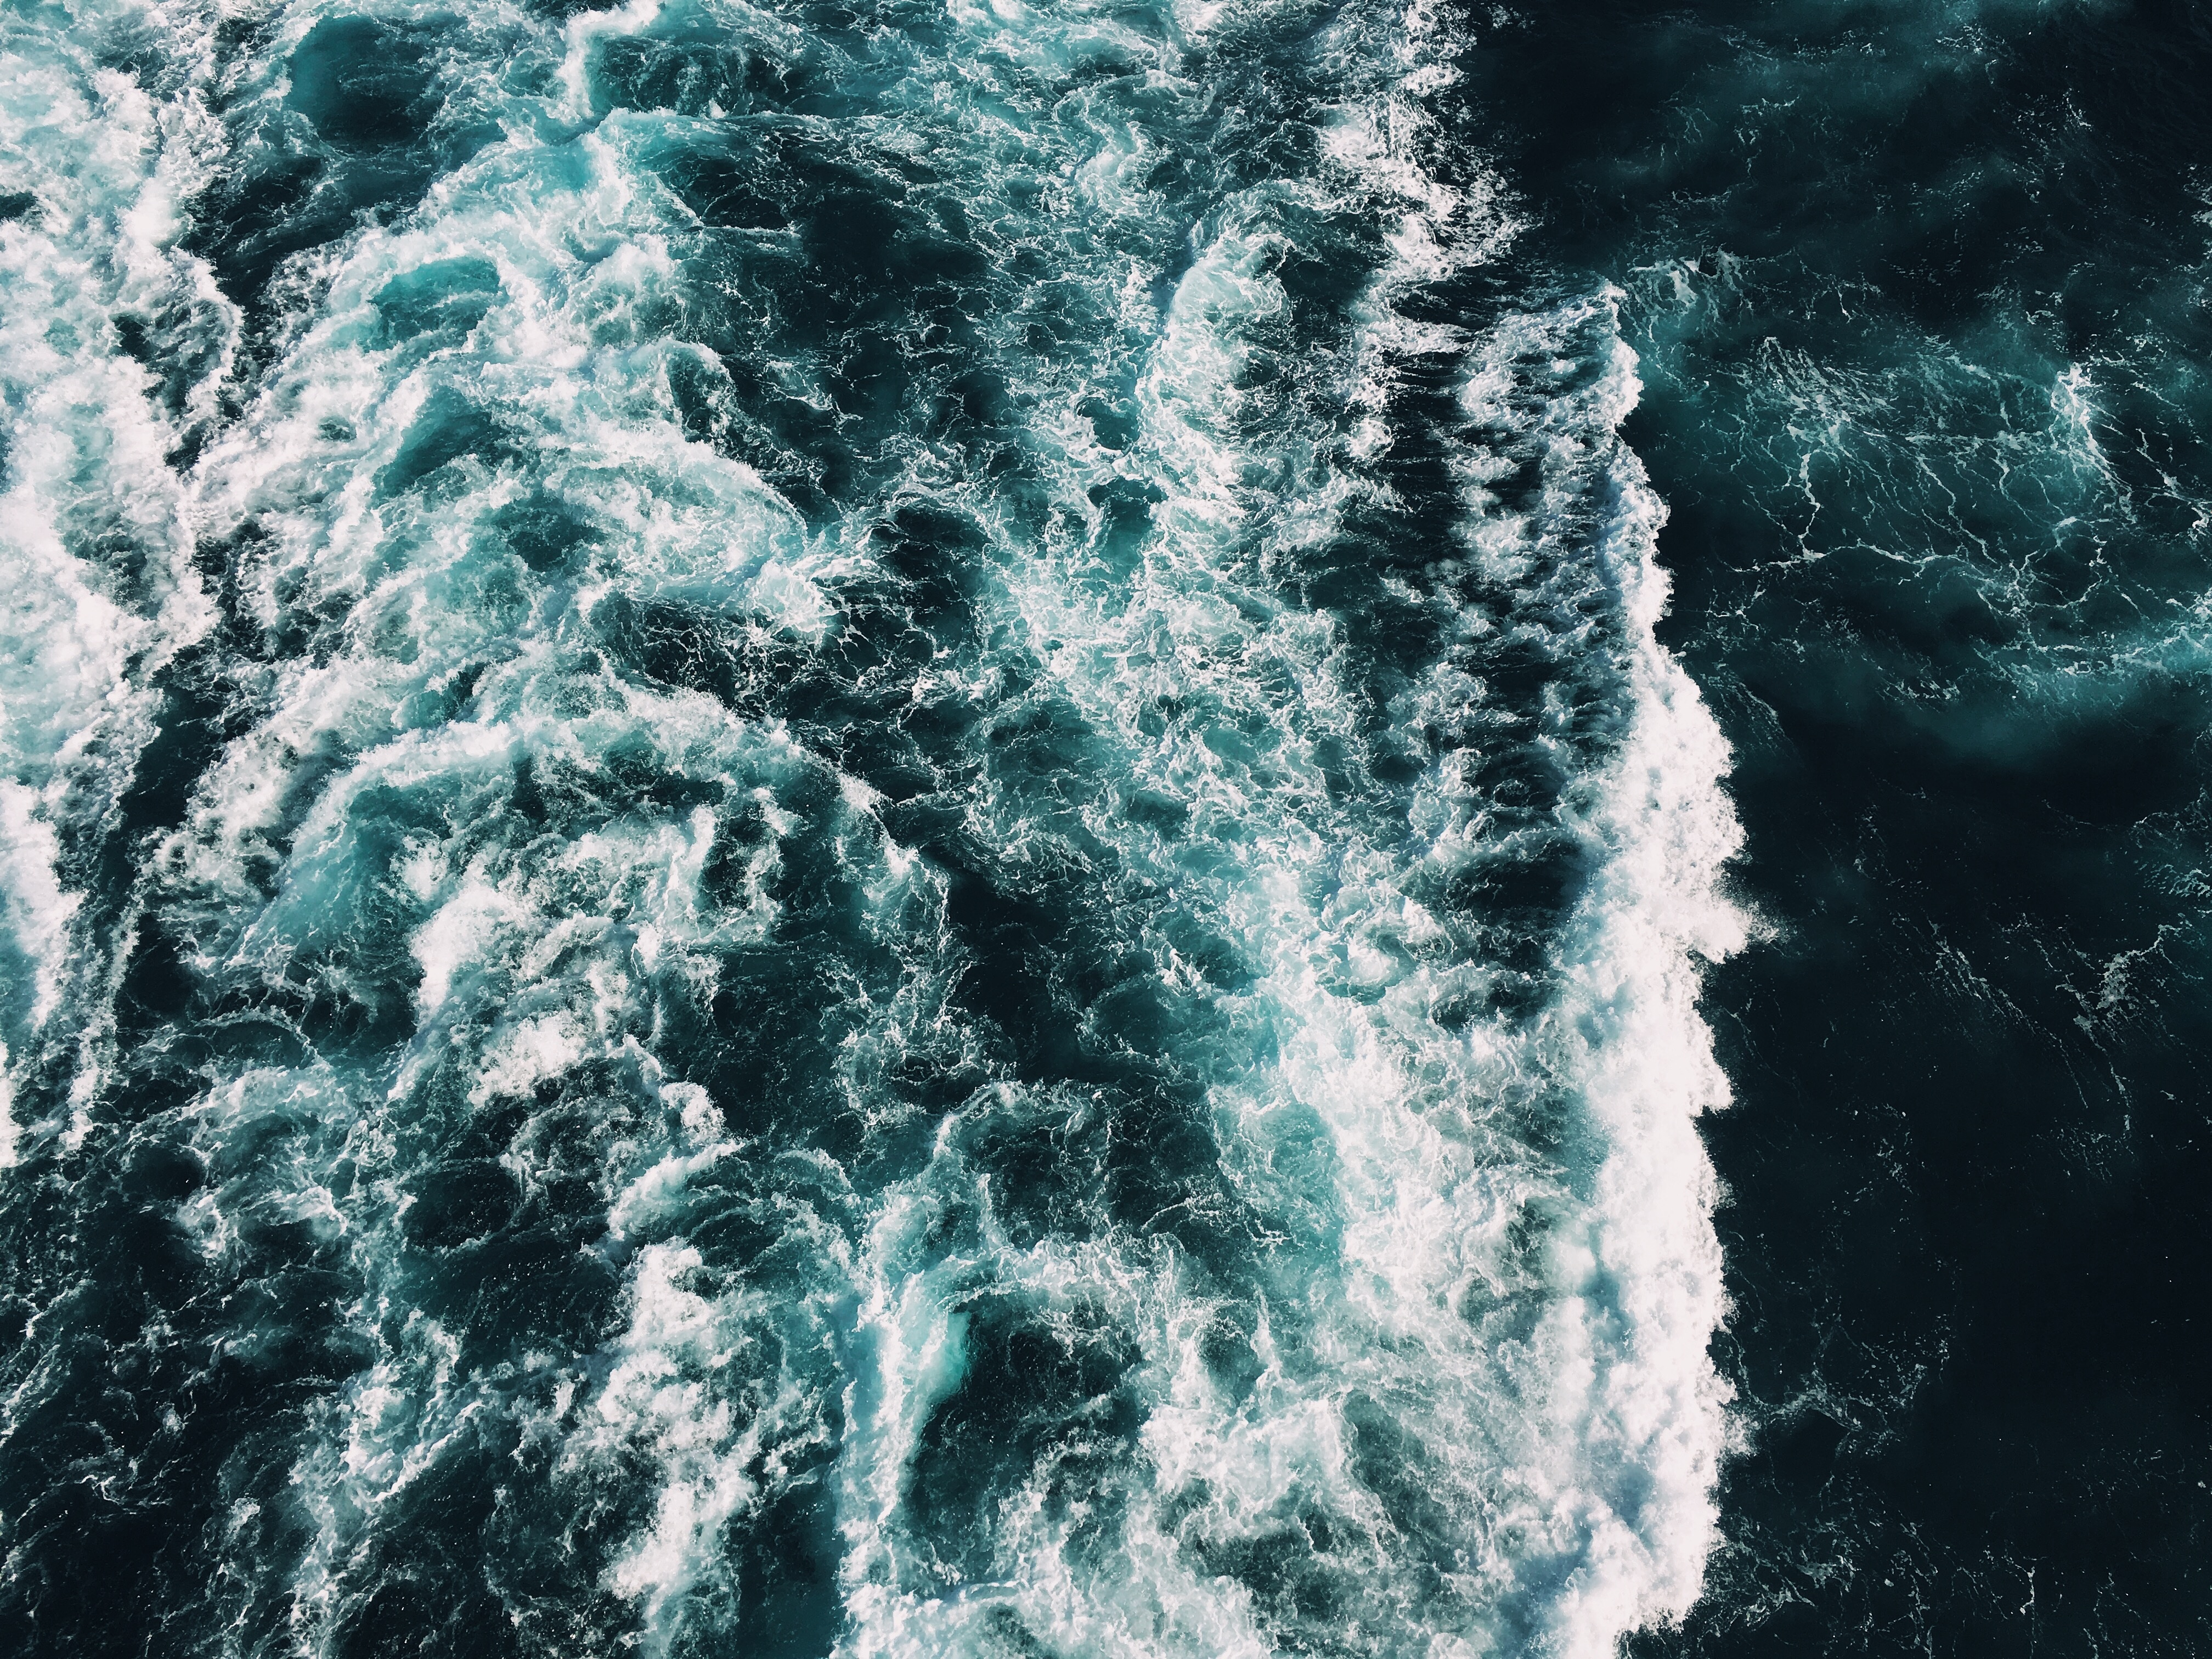 SWIMMING WOMAN DROWNS WHILE OUT AT SEA